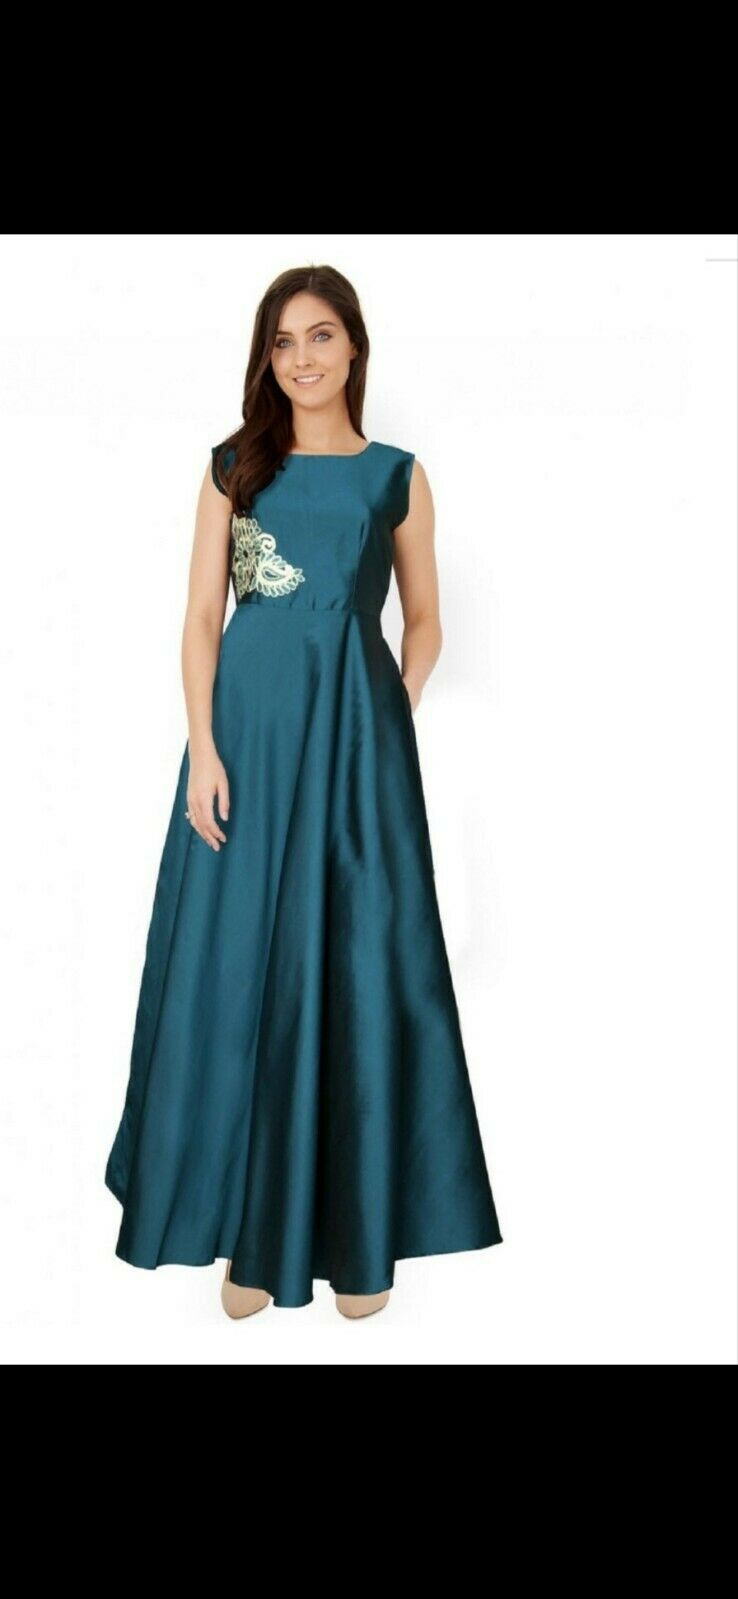 Ladies indian Full Length Gown Teal, Anarkali, Size Small gorgeous embellishment